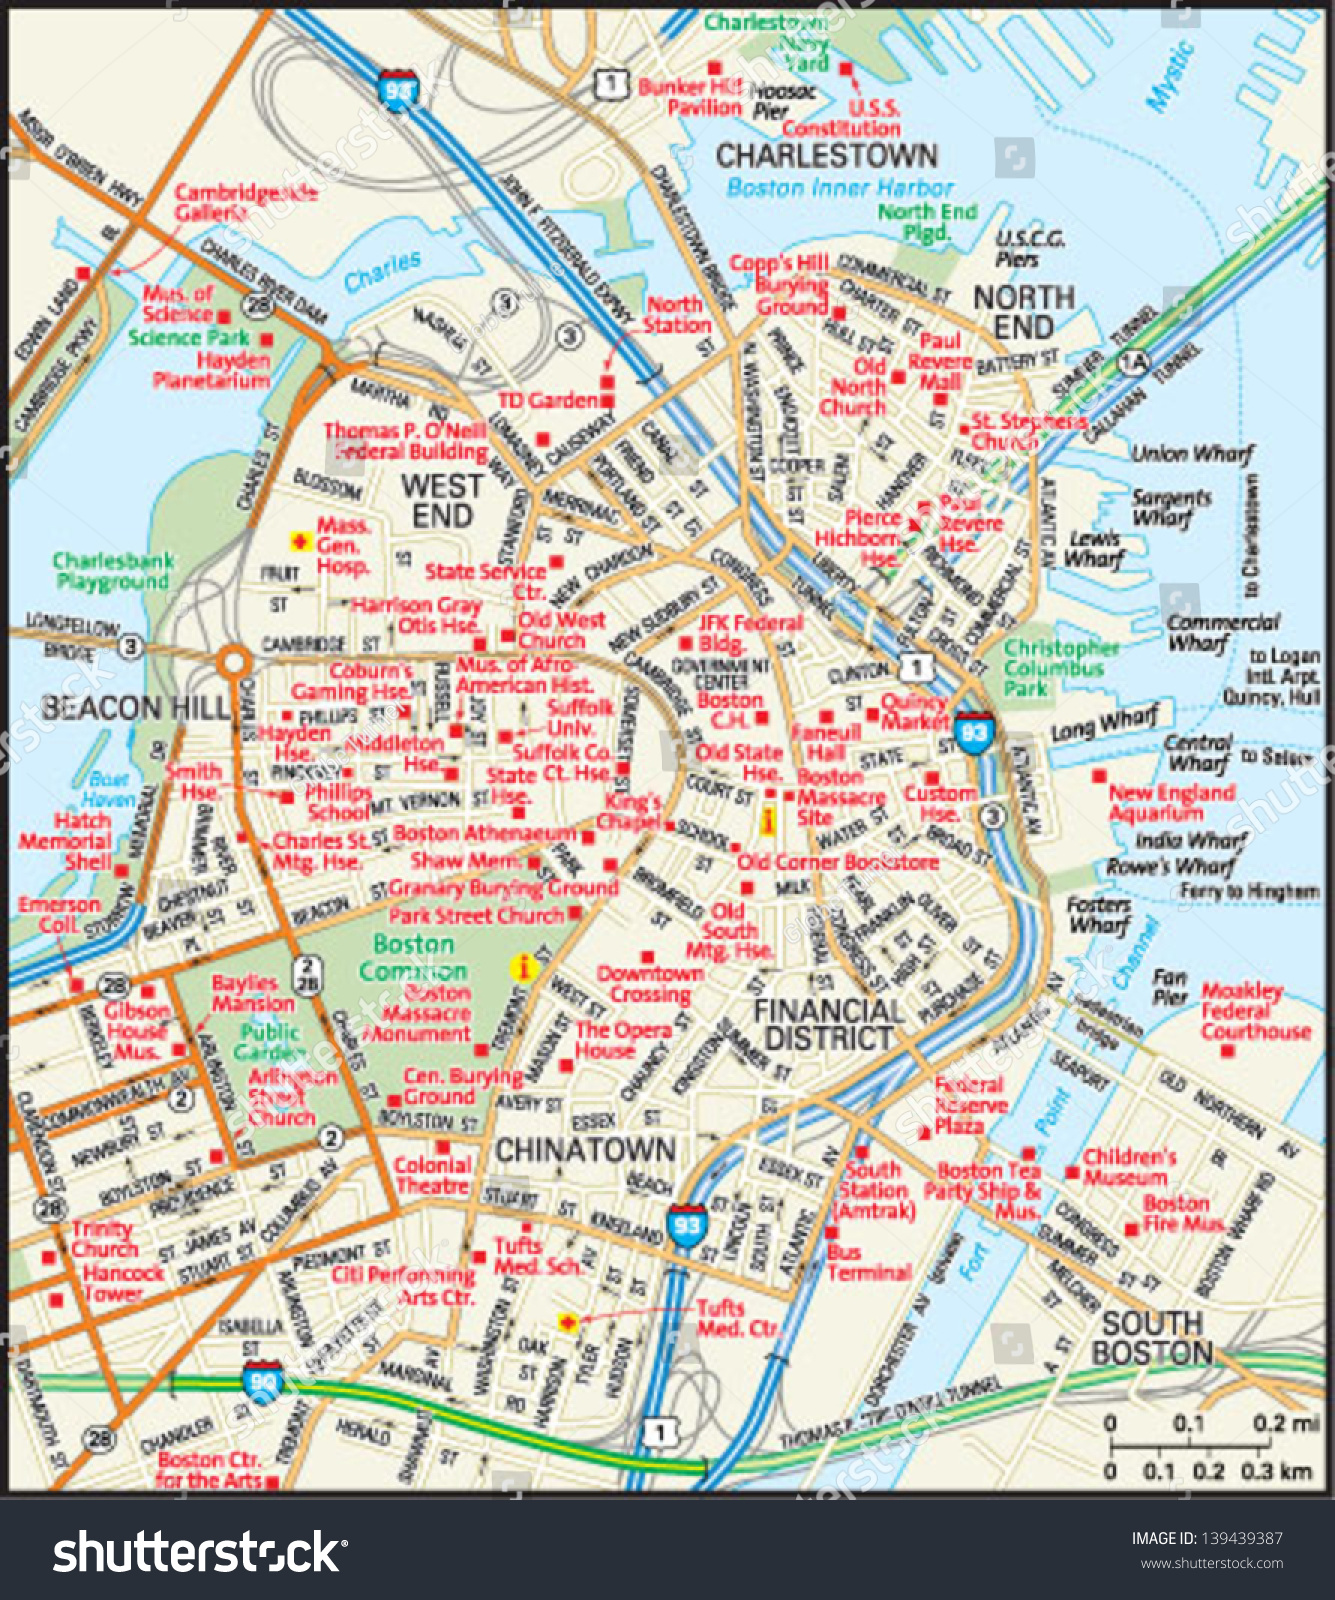 Downtown Boston Hotels Map on